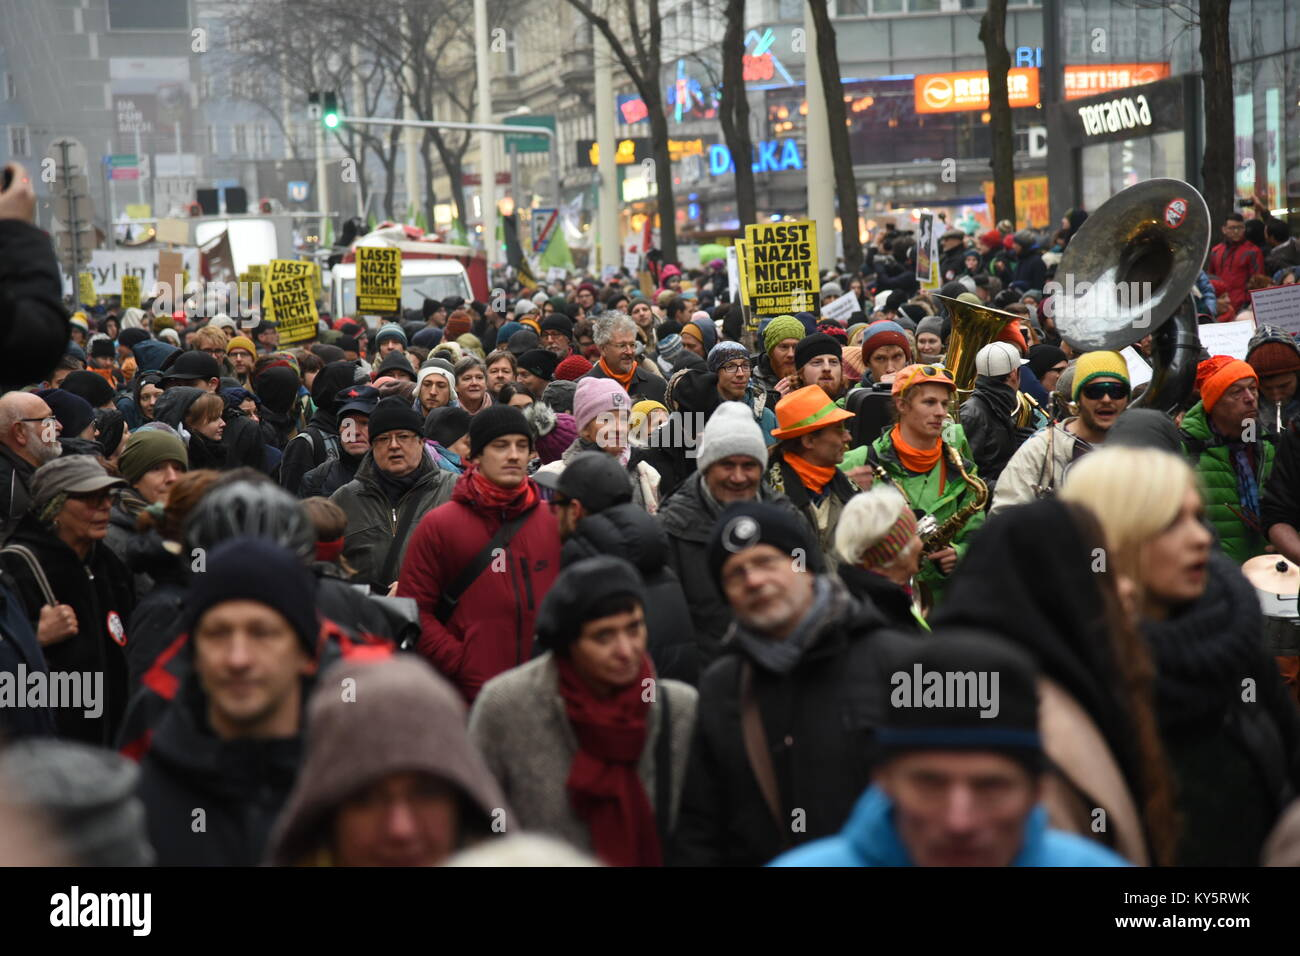 Vienna, Austria. 13th Jan, 2018. more than 20.000 people attend an anti-government demonstration. organisers speak - Stock Image